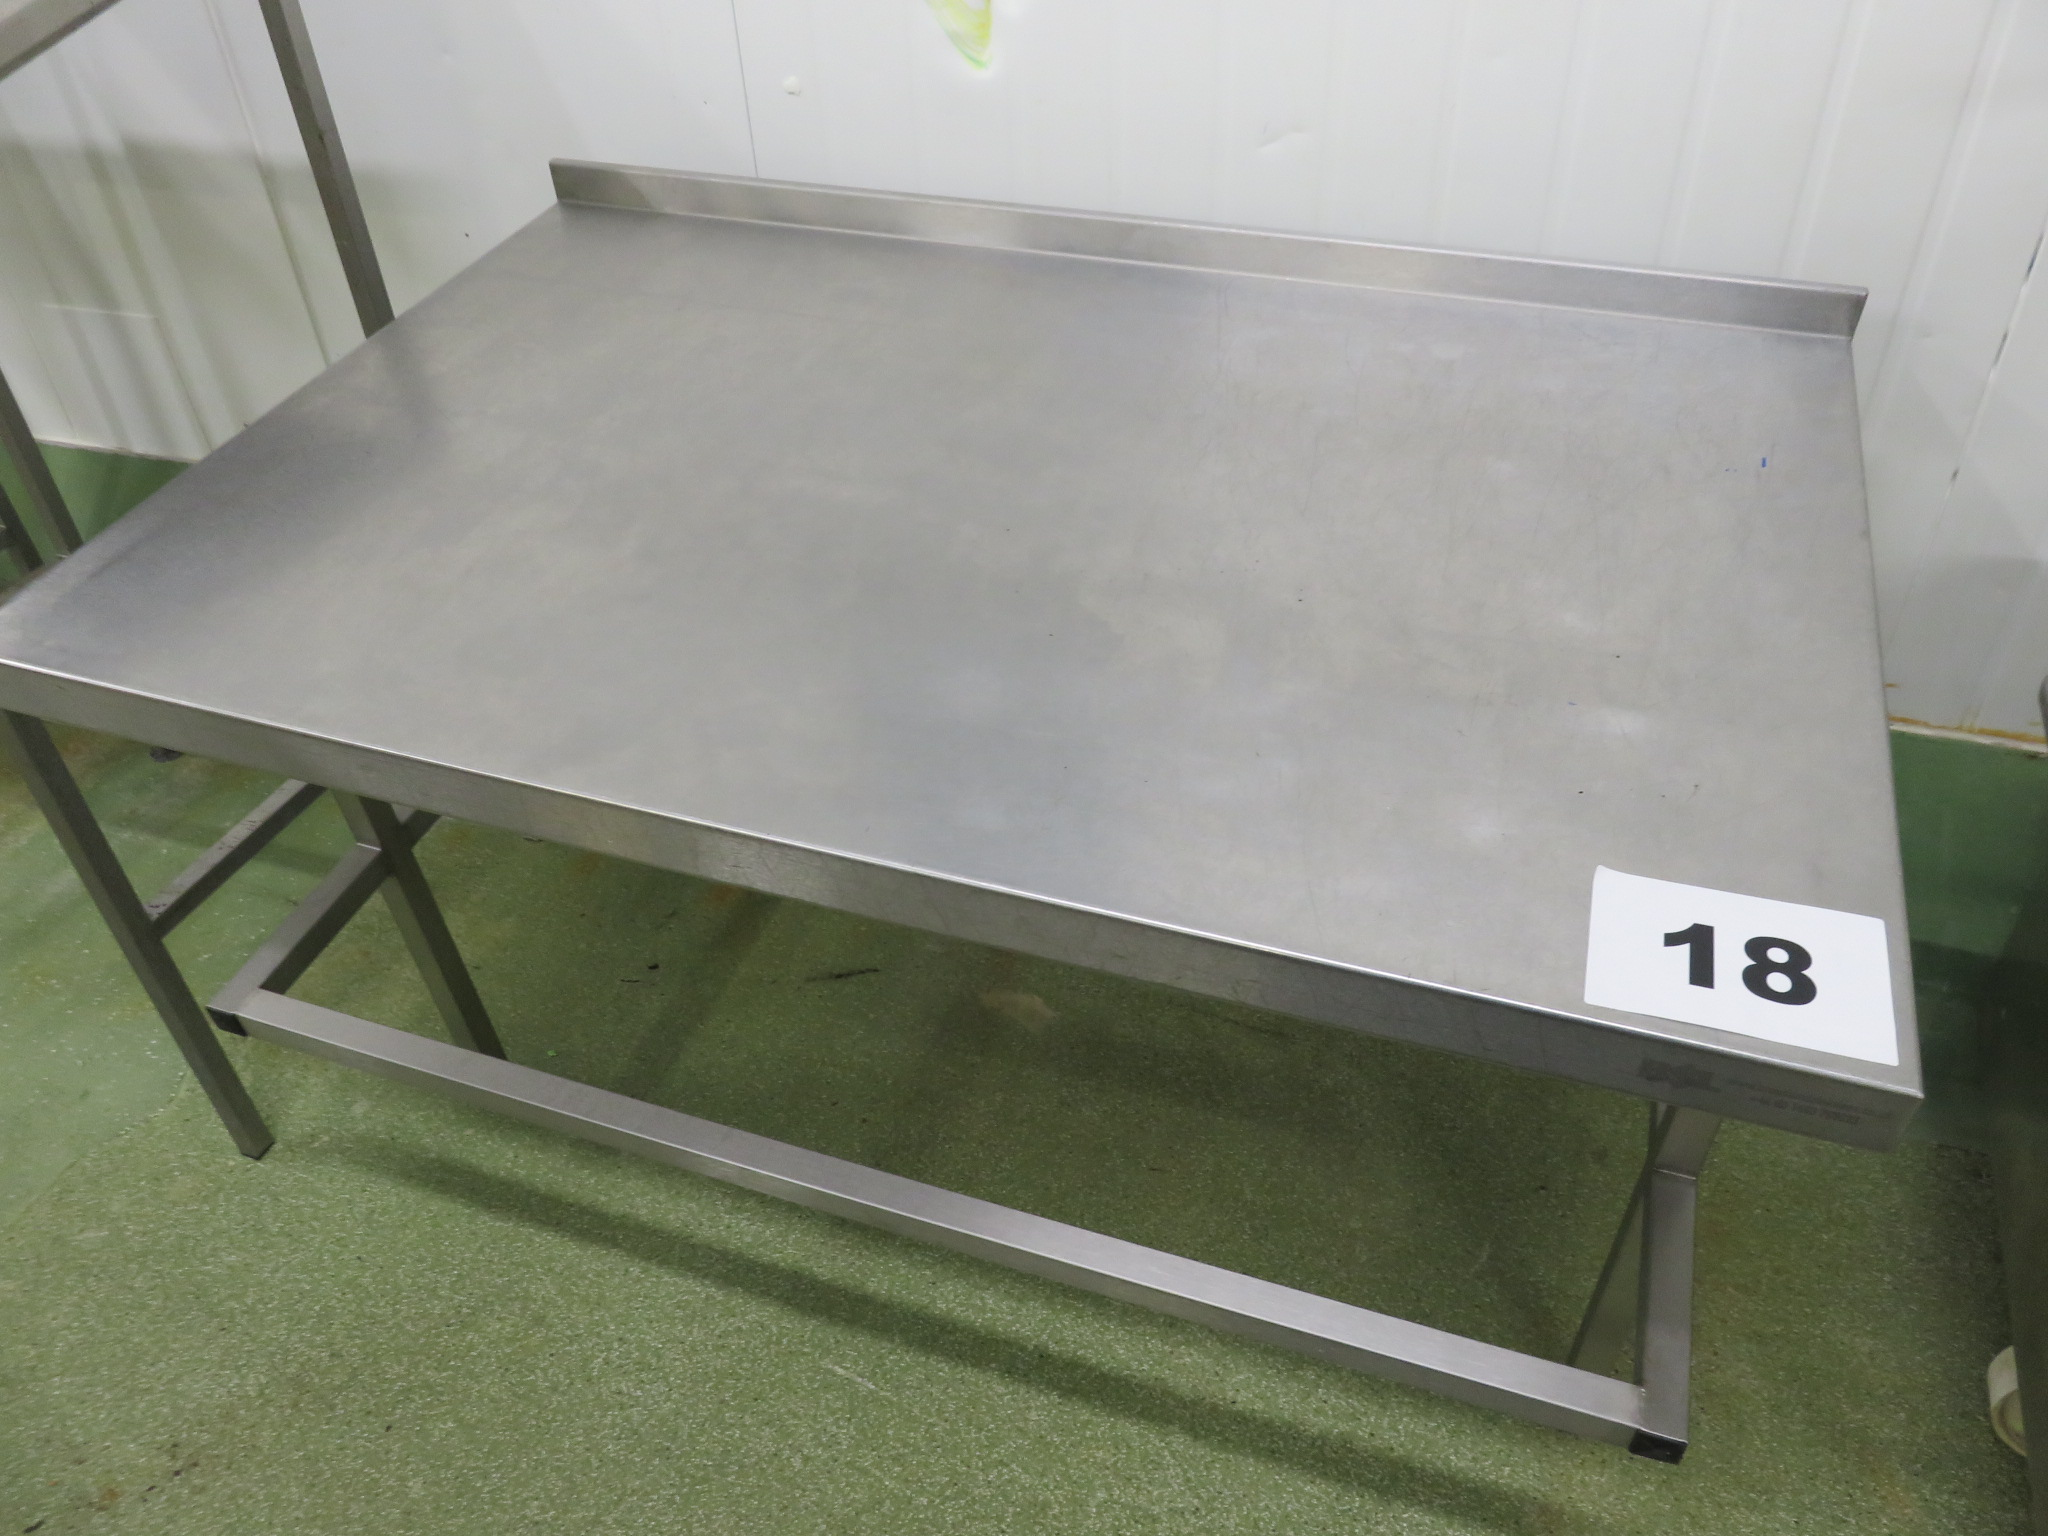 Lot 18 - S/s table. LO £15.